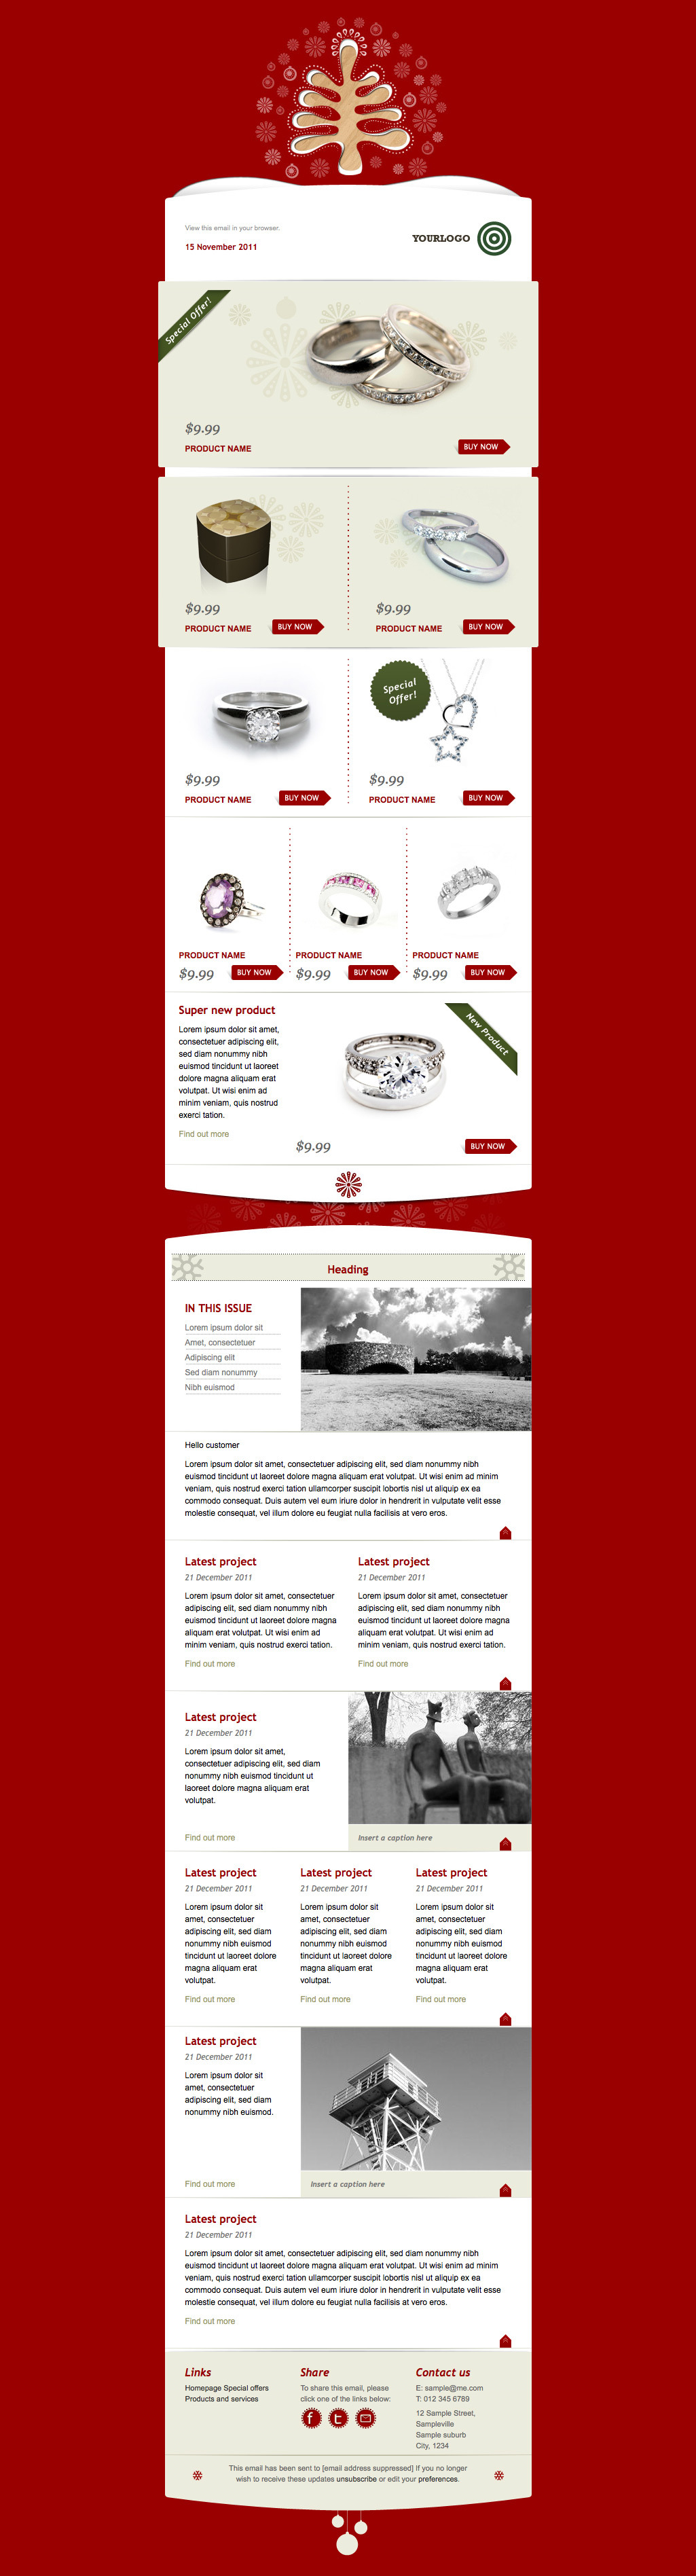 Simply Christmas 2 - Example layout using full red template